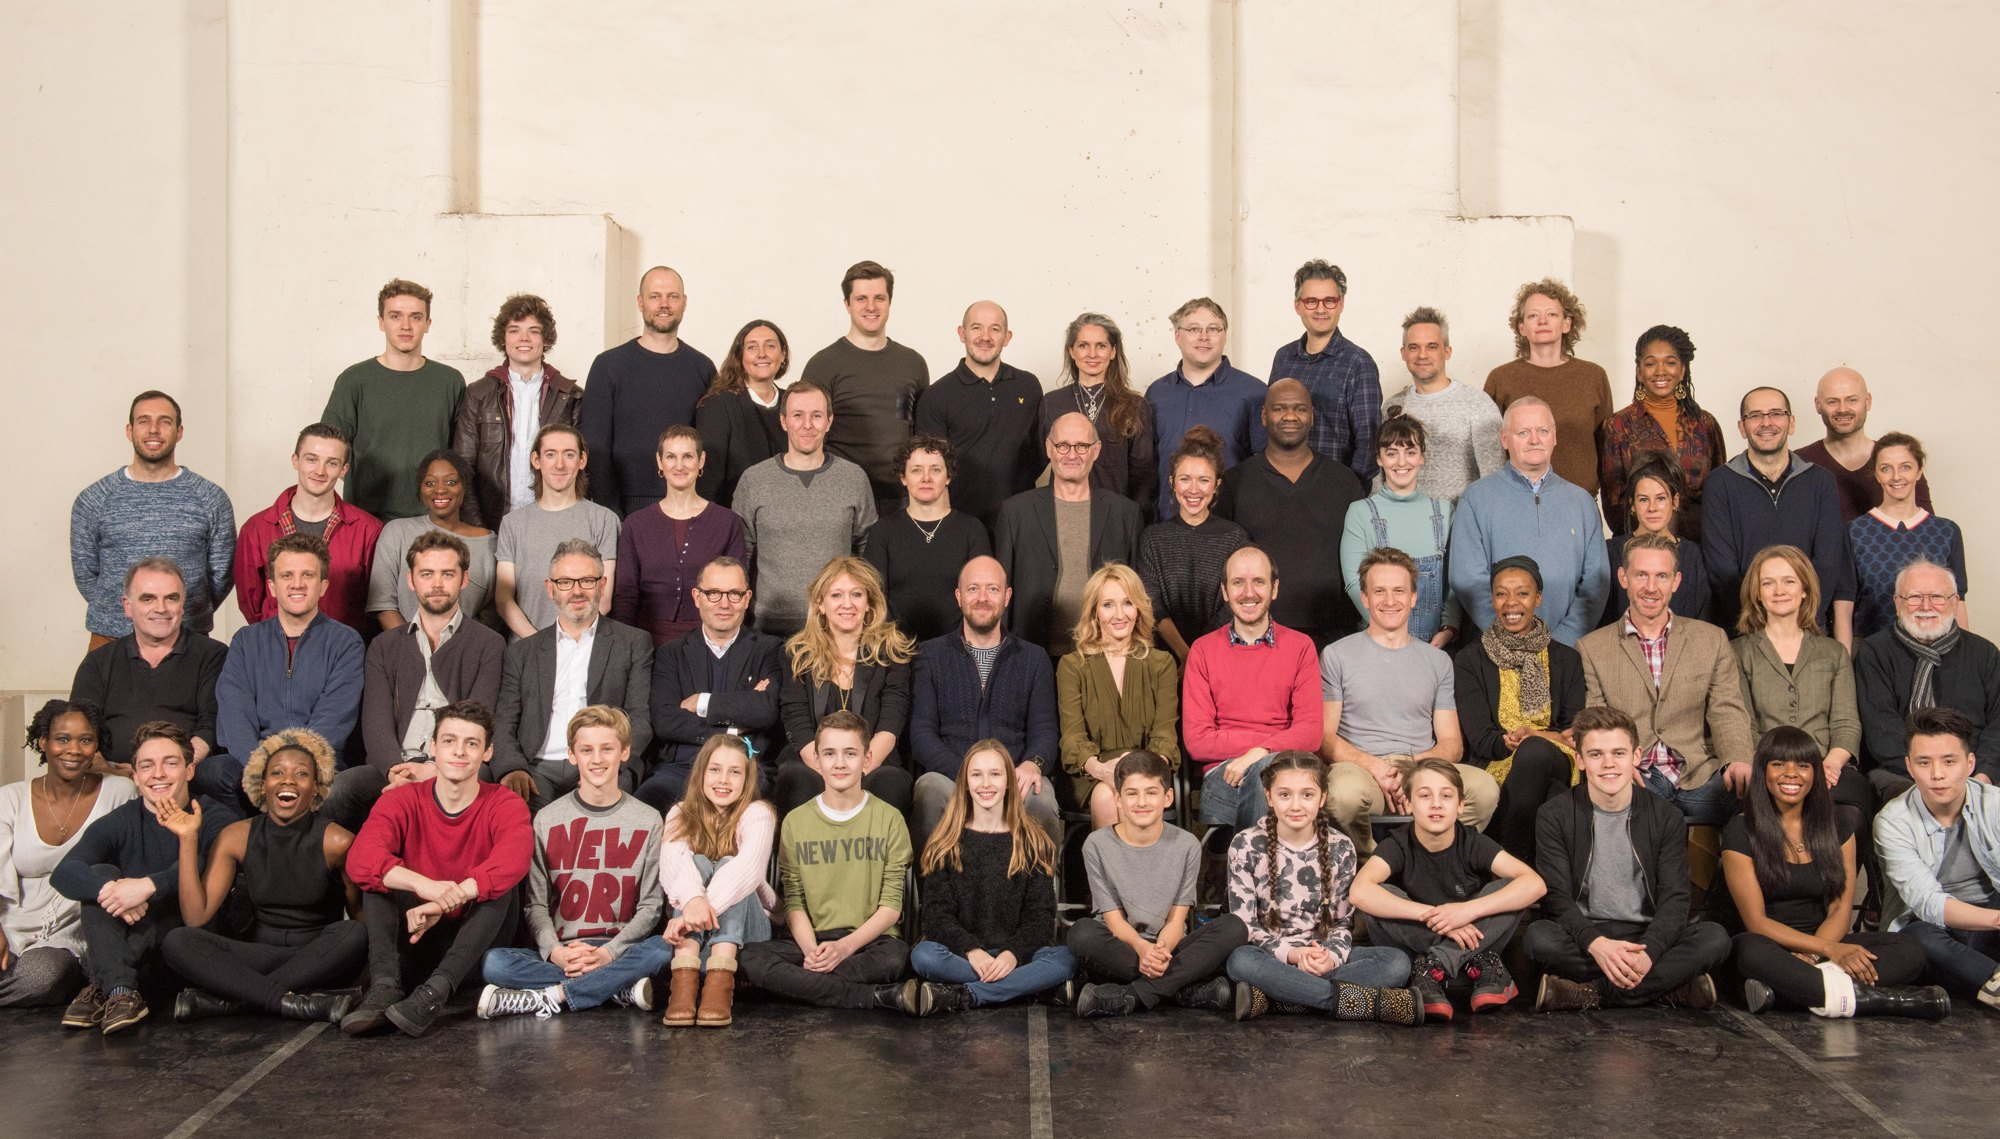 Harry Potter & the Cursed Child : les personnages qui apparaissent (léger spoiler)